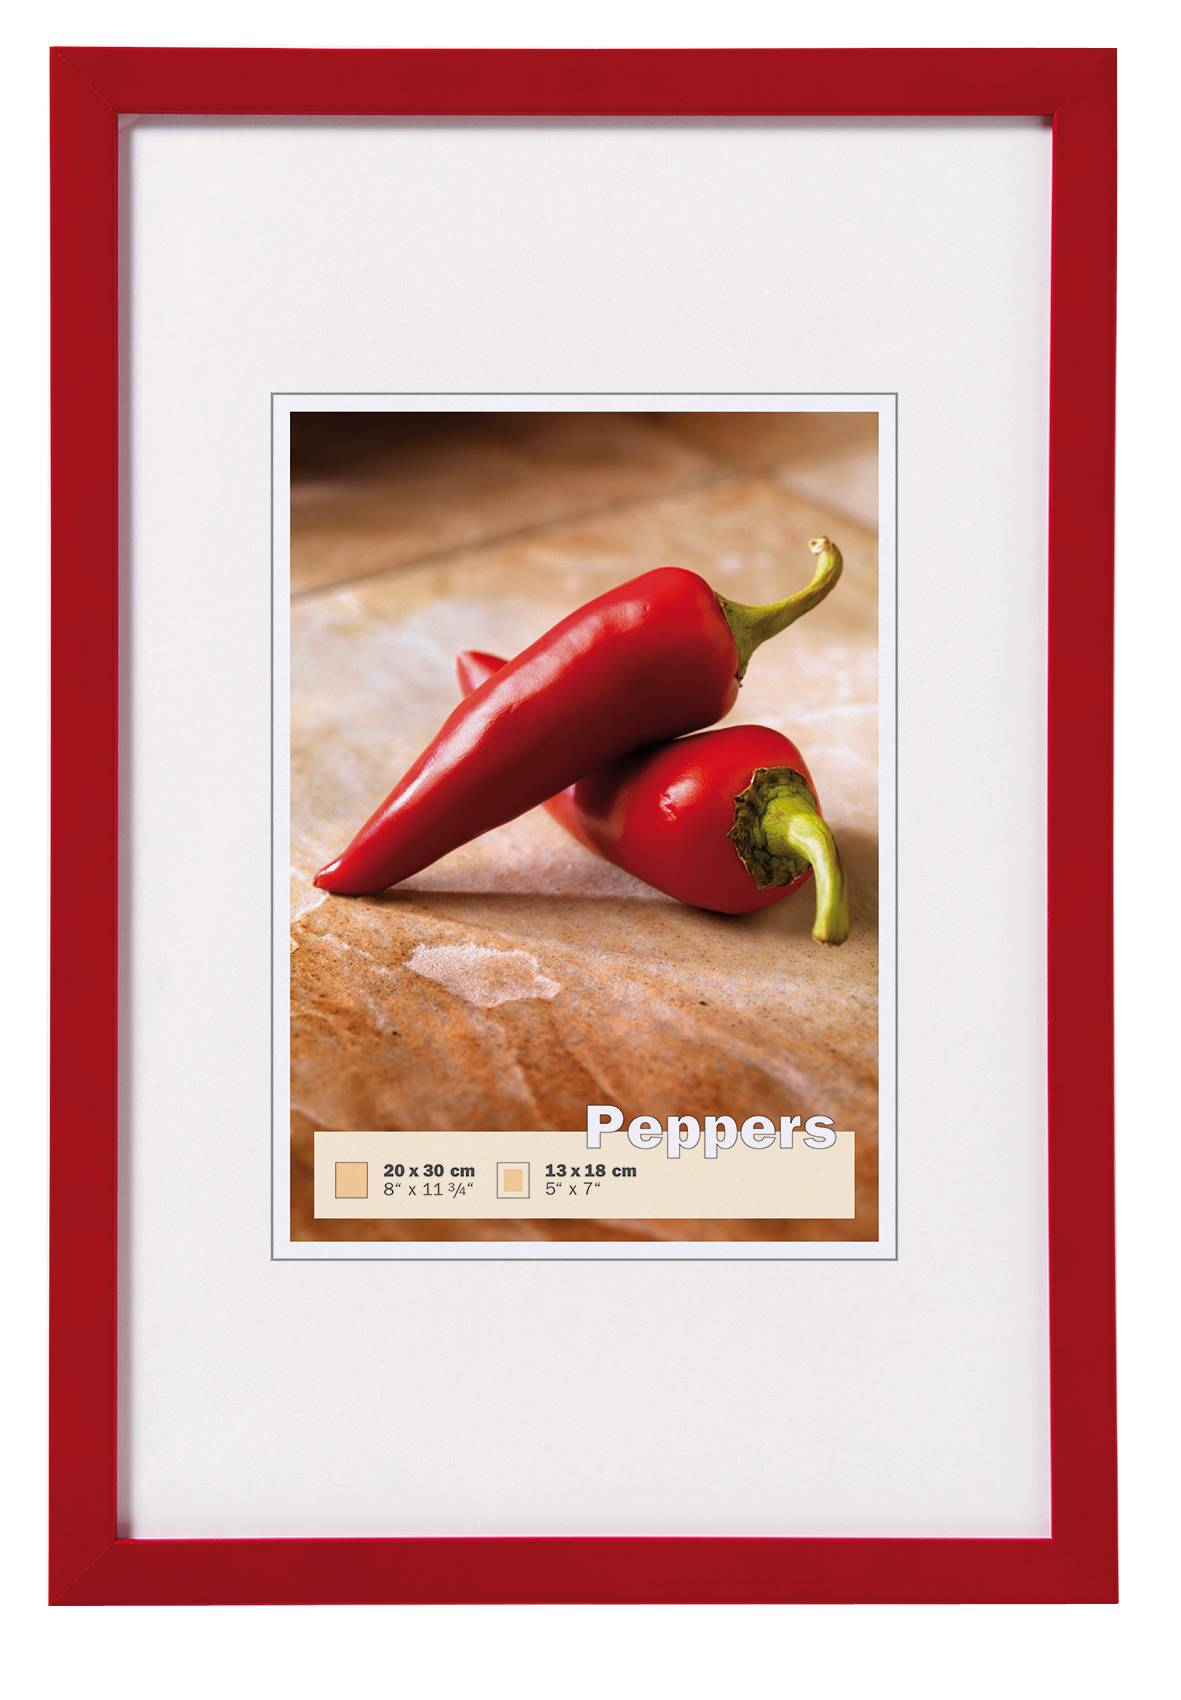 Walther Peppers Punainen 10x15 cm